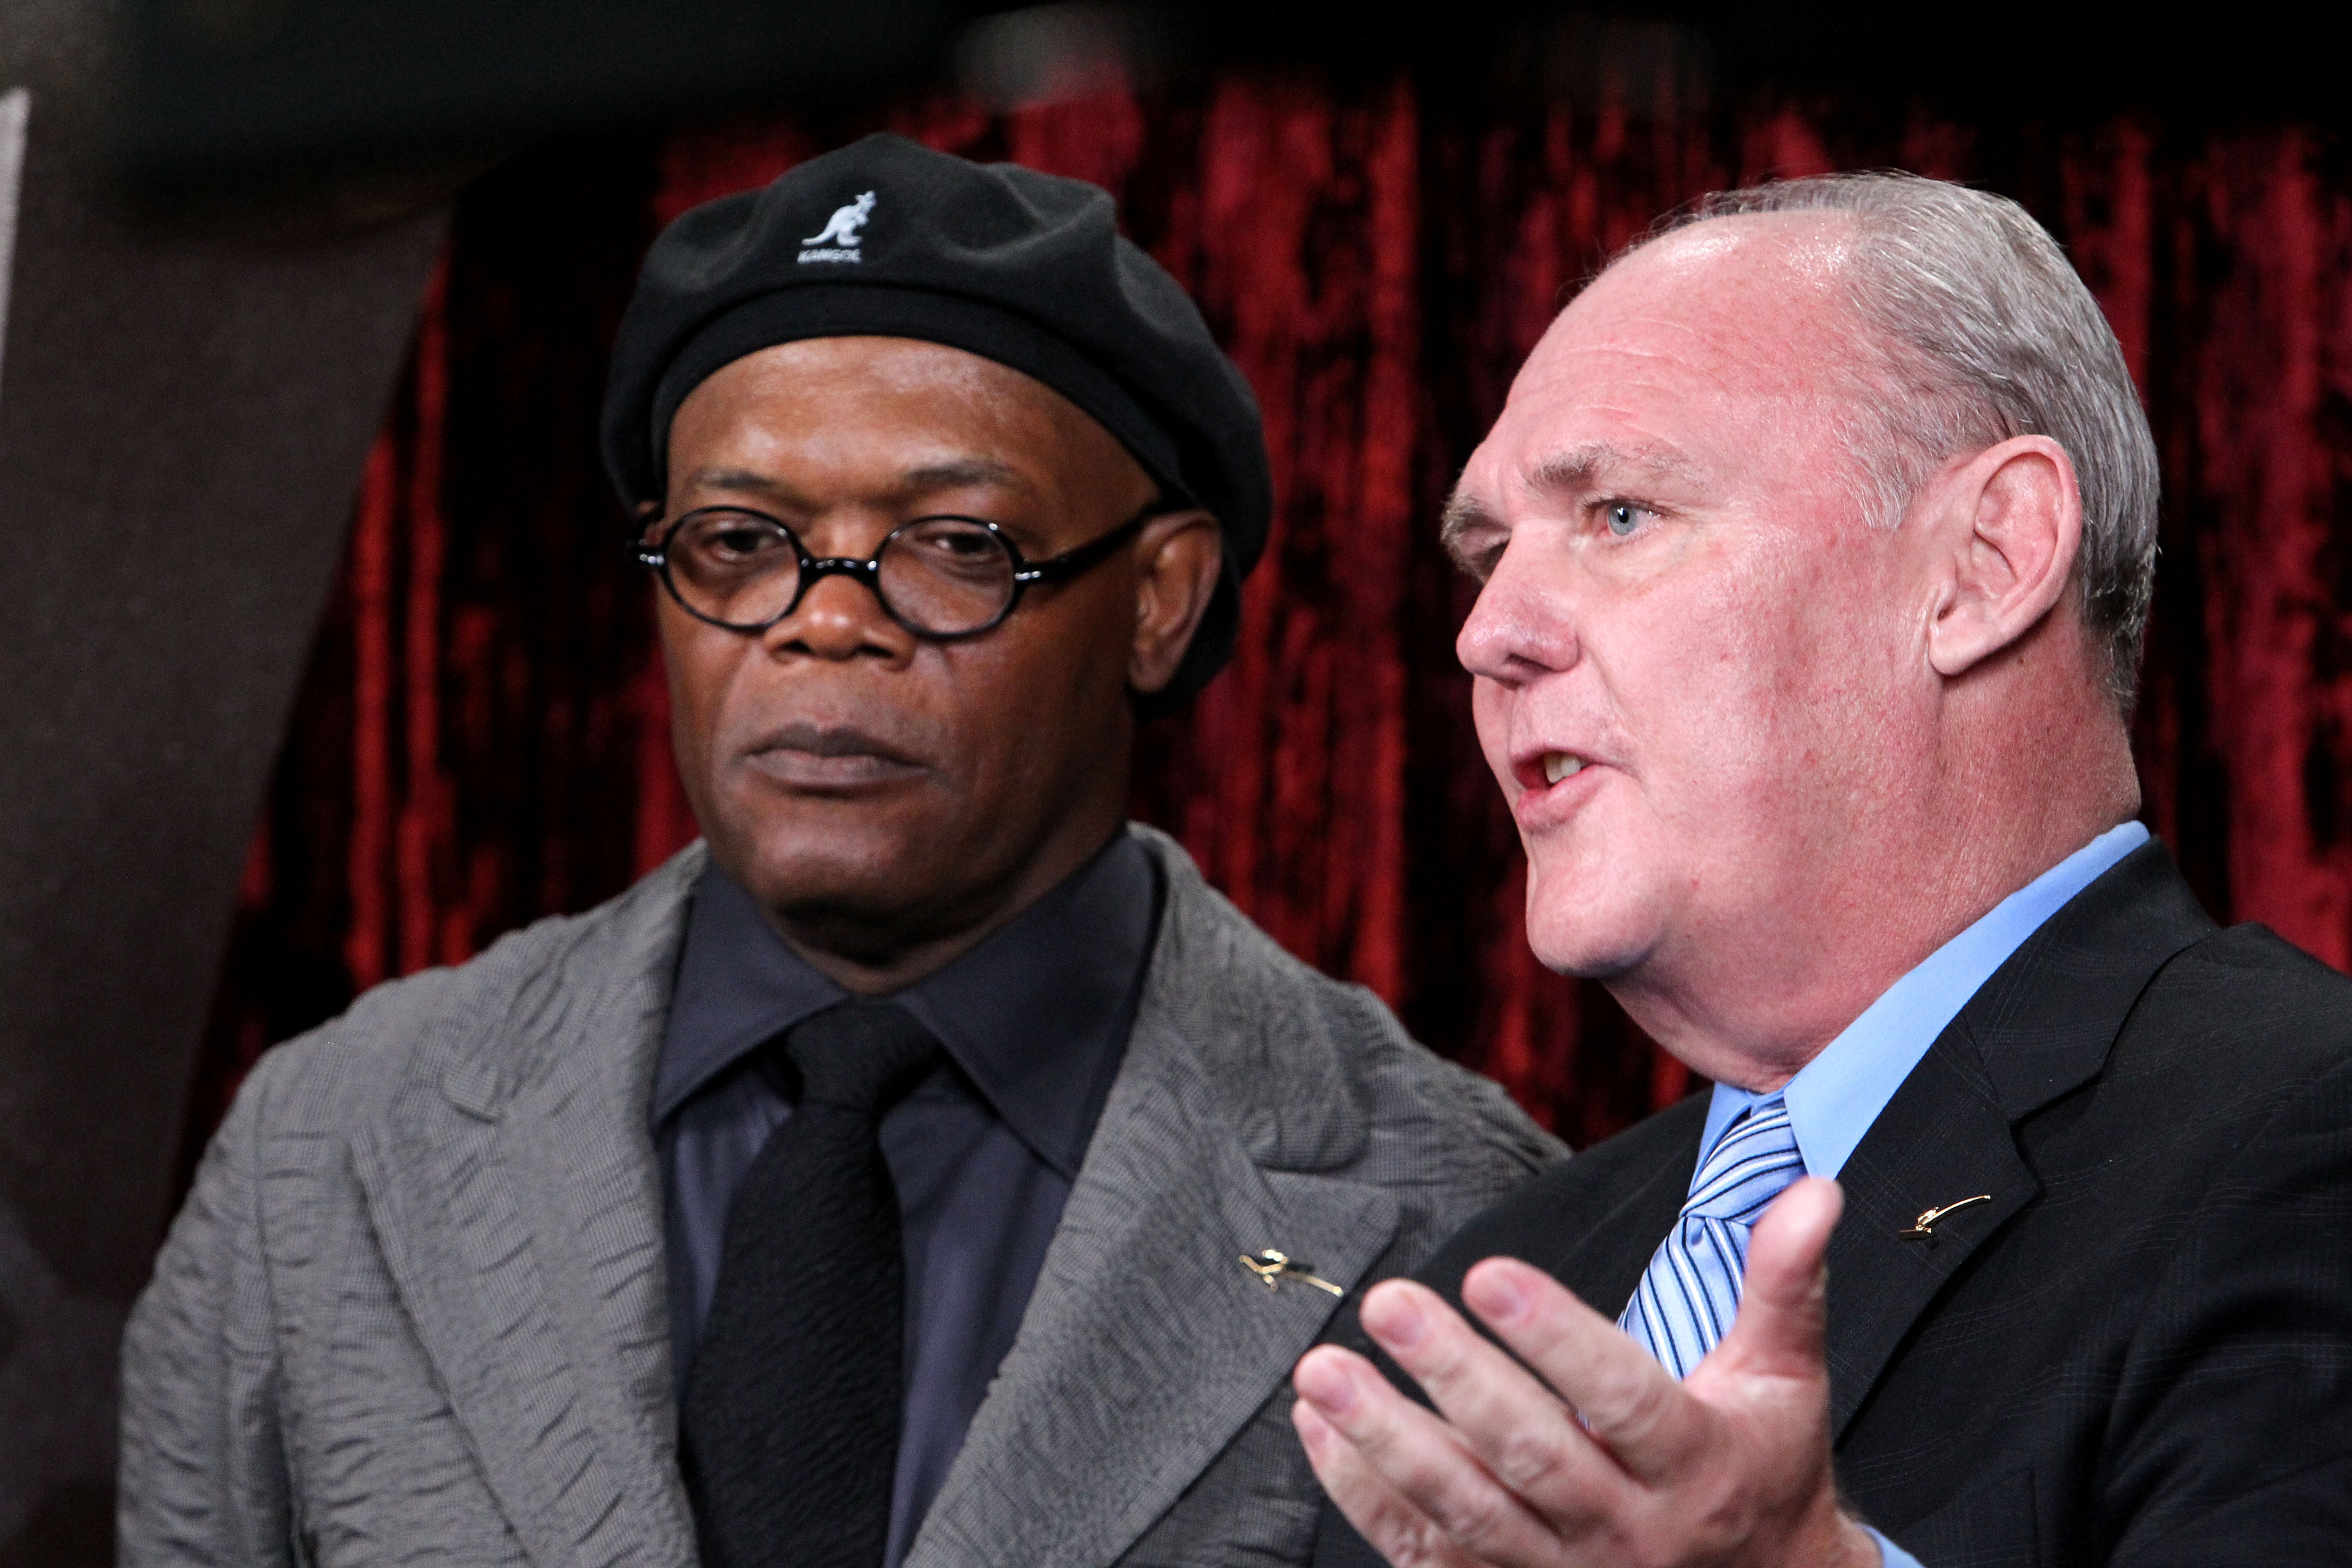 LOS ANGELES, CA - JULY 14:  (L-R) Actor Samuel L. Jackson and Denver Nuggets head coach George Karl backstage during the 2010 ESPY Awards at Nokia Theatre L.A. Live on July 14, 2010 in Los Angeles, California.  (Photo by Alexandra Wyman/Getty Images for E